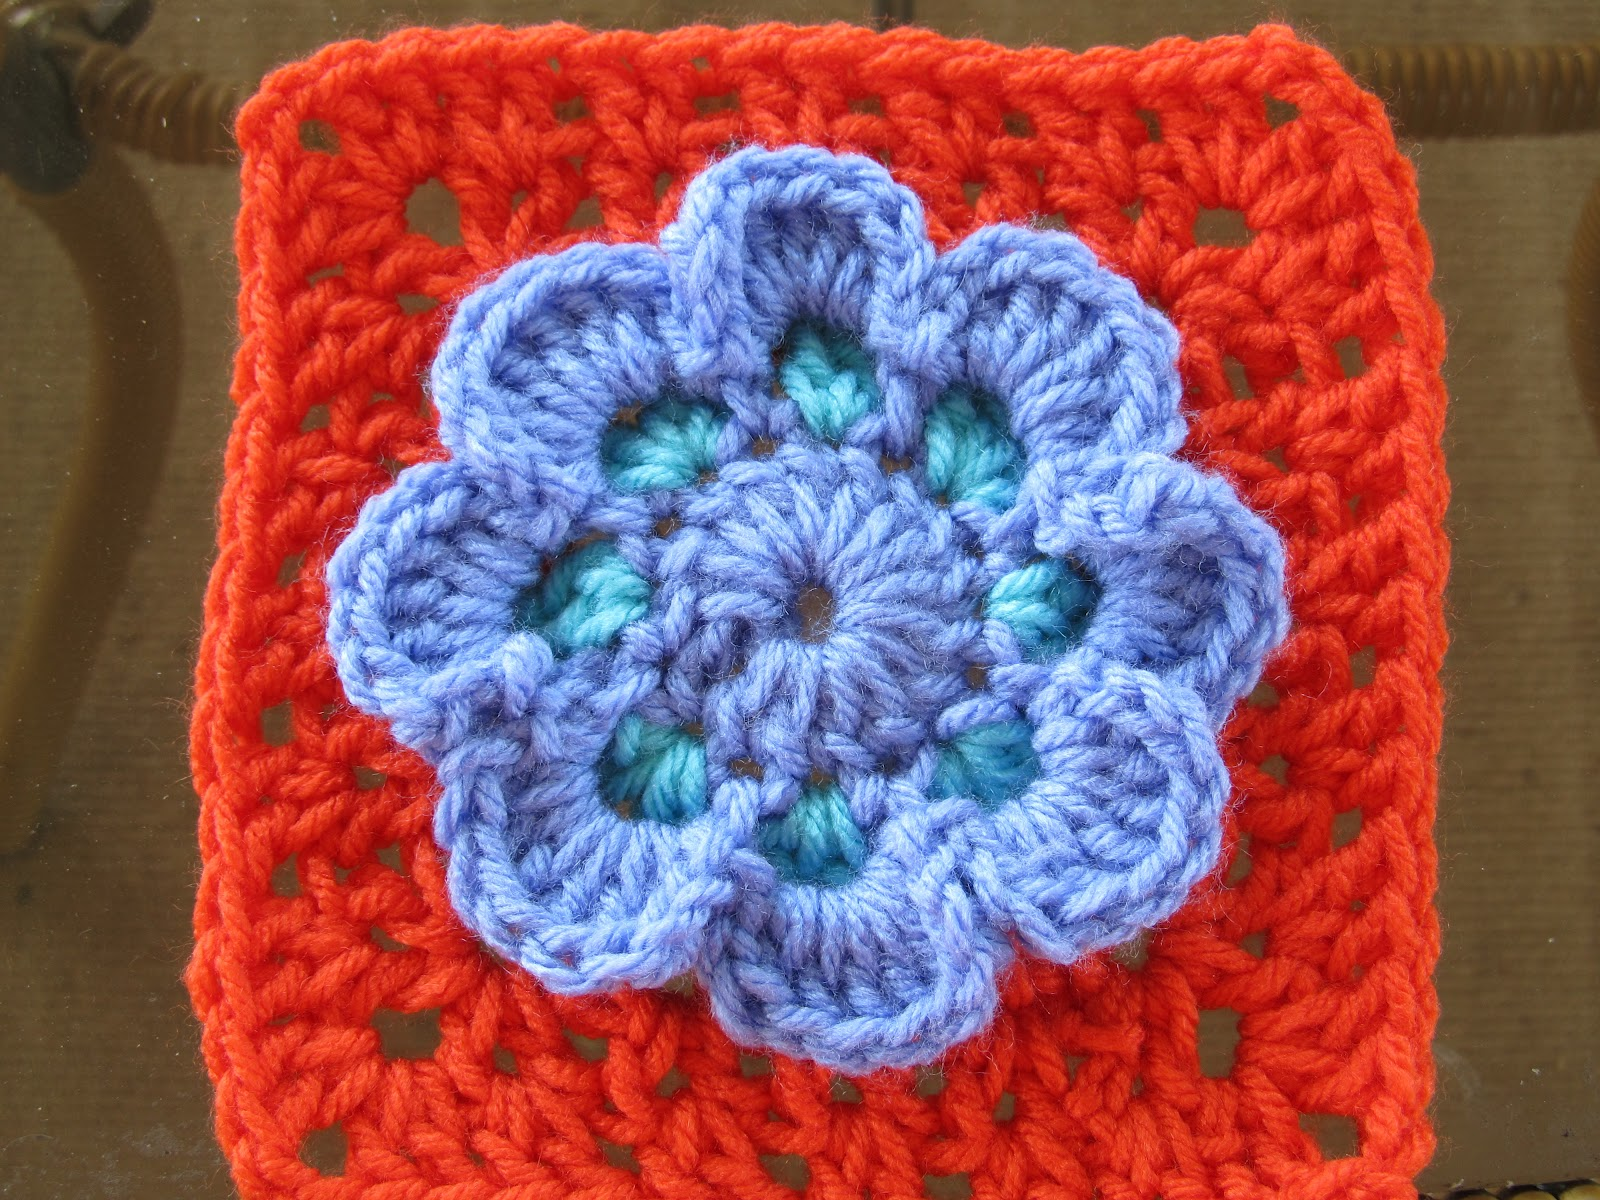 Crochet Pattern Testers : [SmoothFox Crochet and Knit] Testers Found for Violas ...